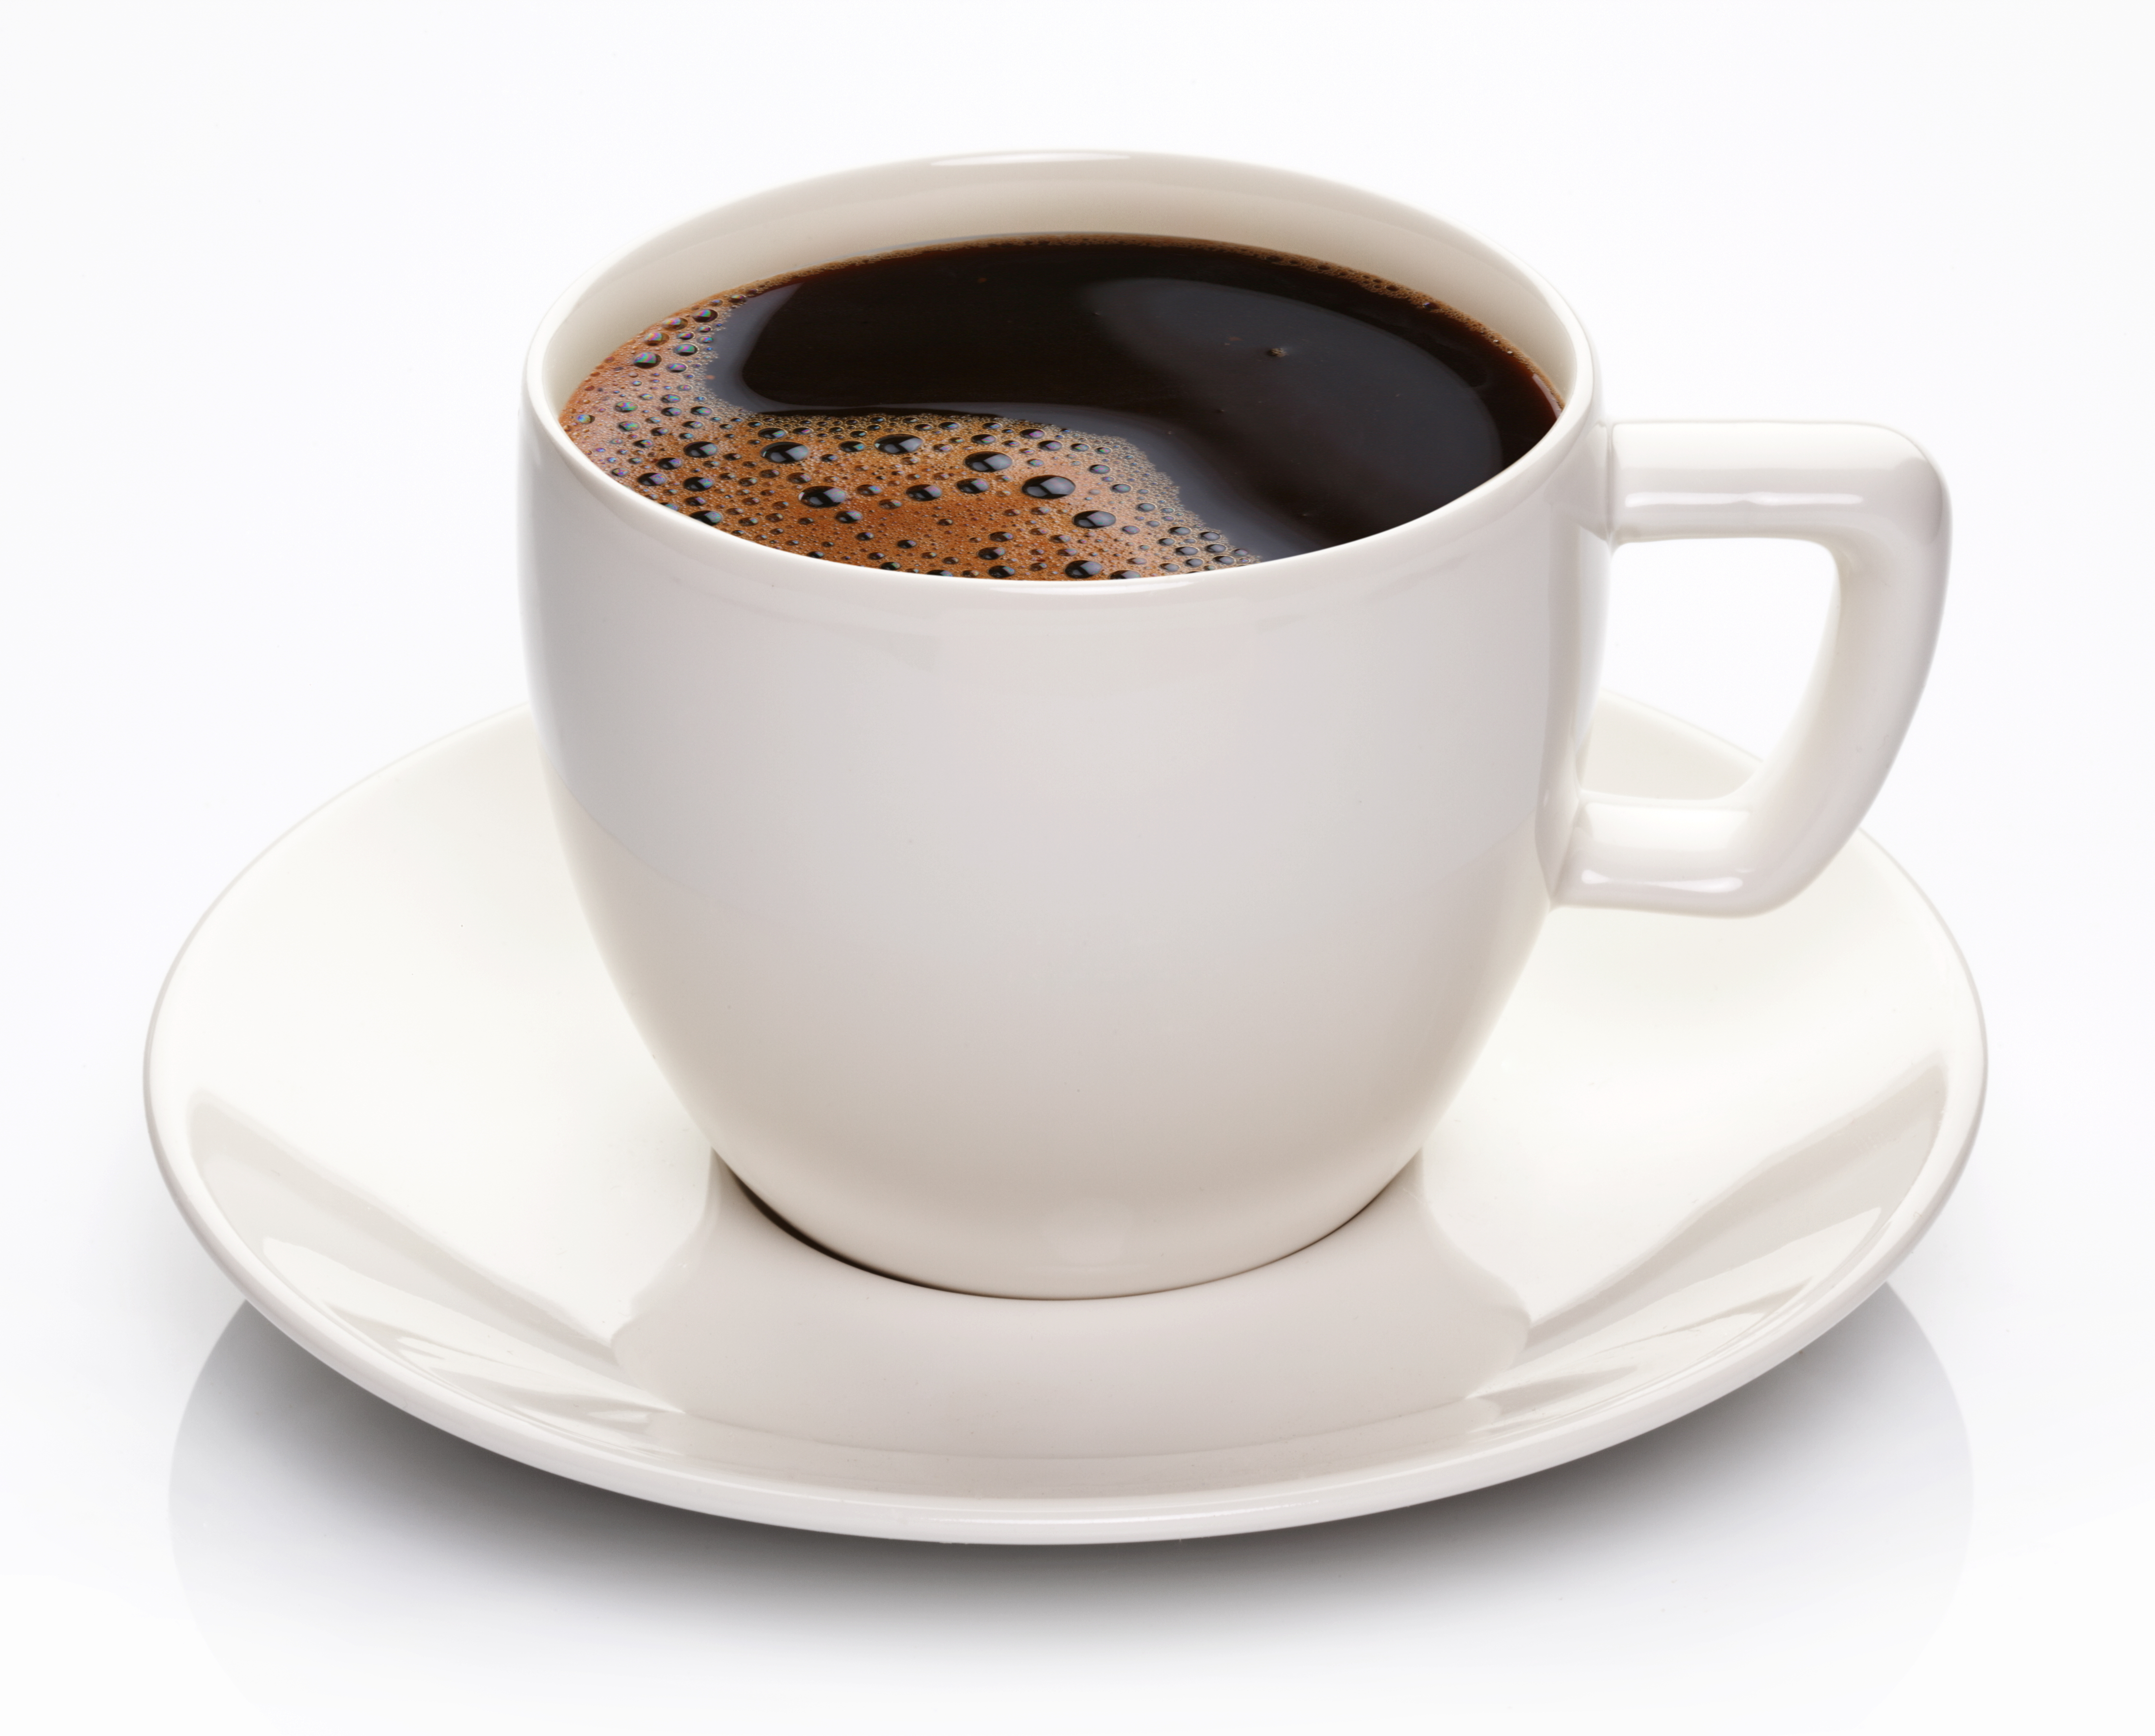 PNG Cup Of Coffee - 133136